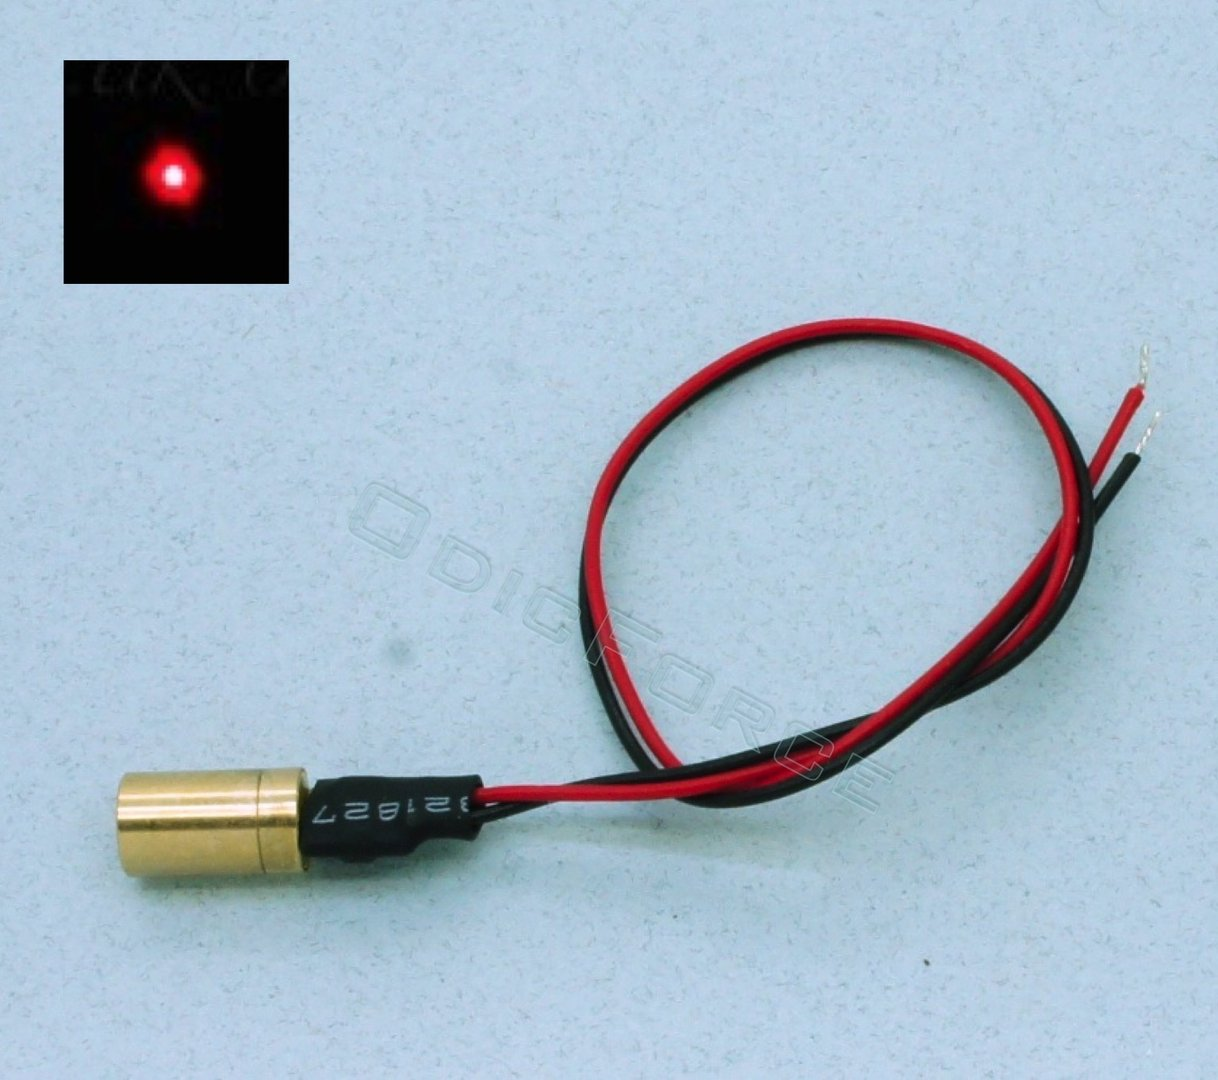 3mW Red (635nm) Miniature Focusing Dot Laser Module (6.0mm) Class 3R